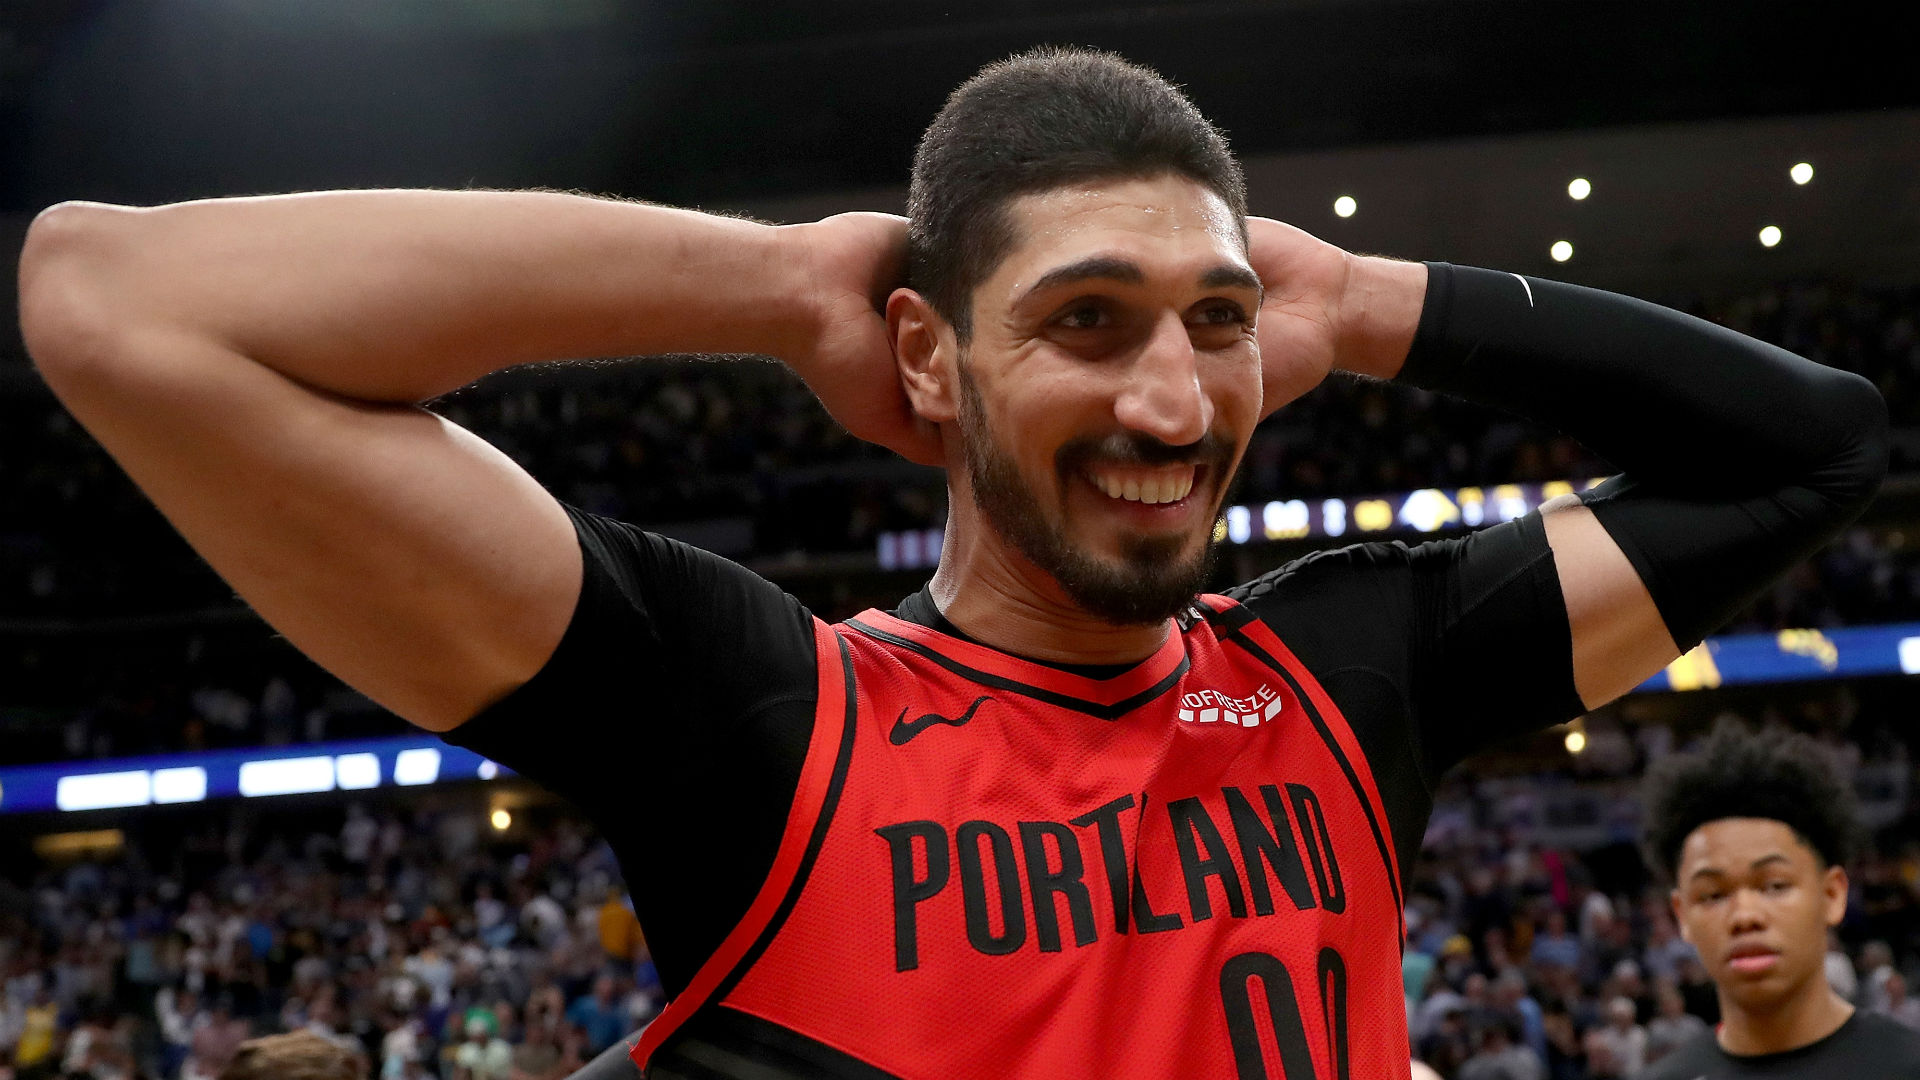 Kanter says Williamson is 'overhyped', calls him 'Julius Randle with hops'